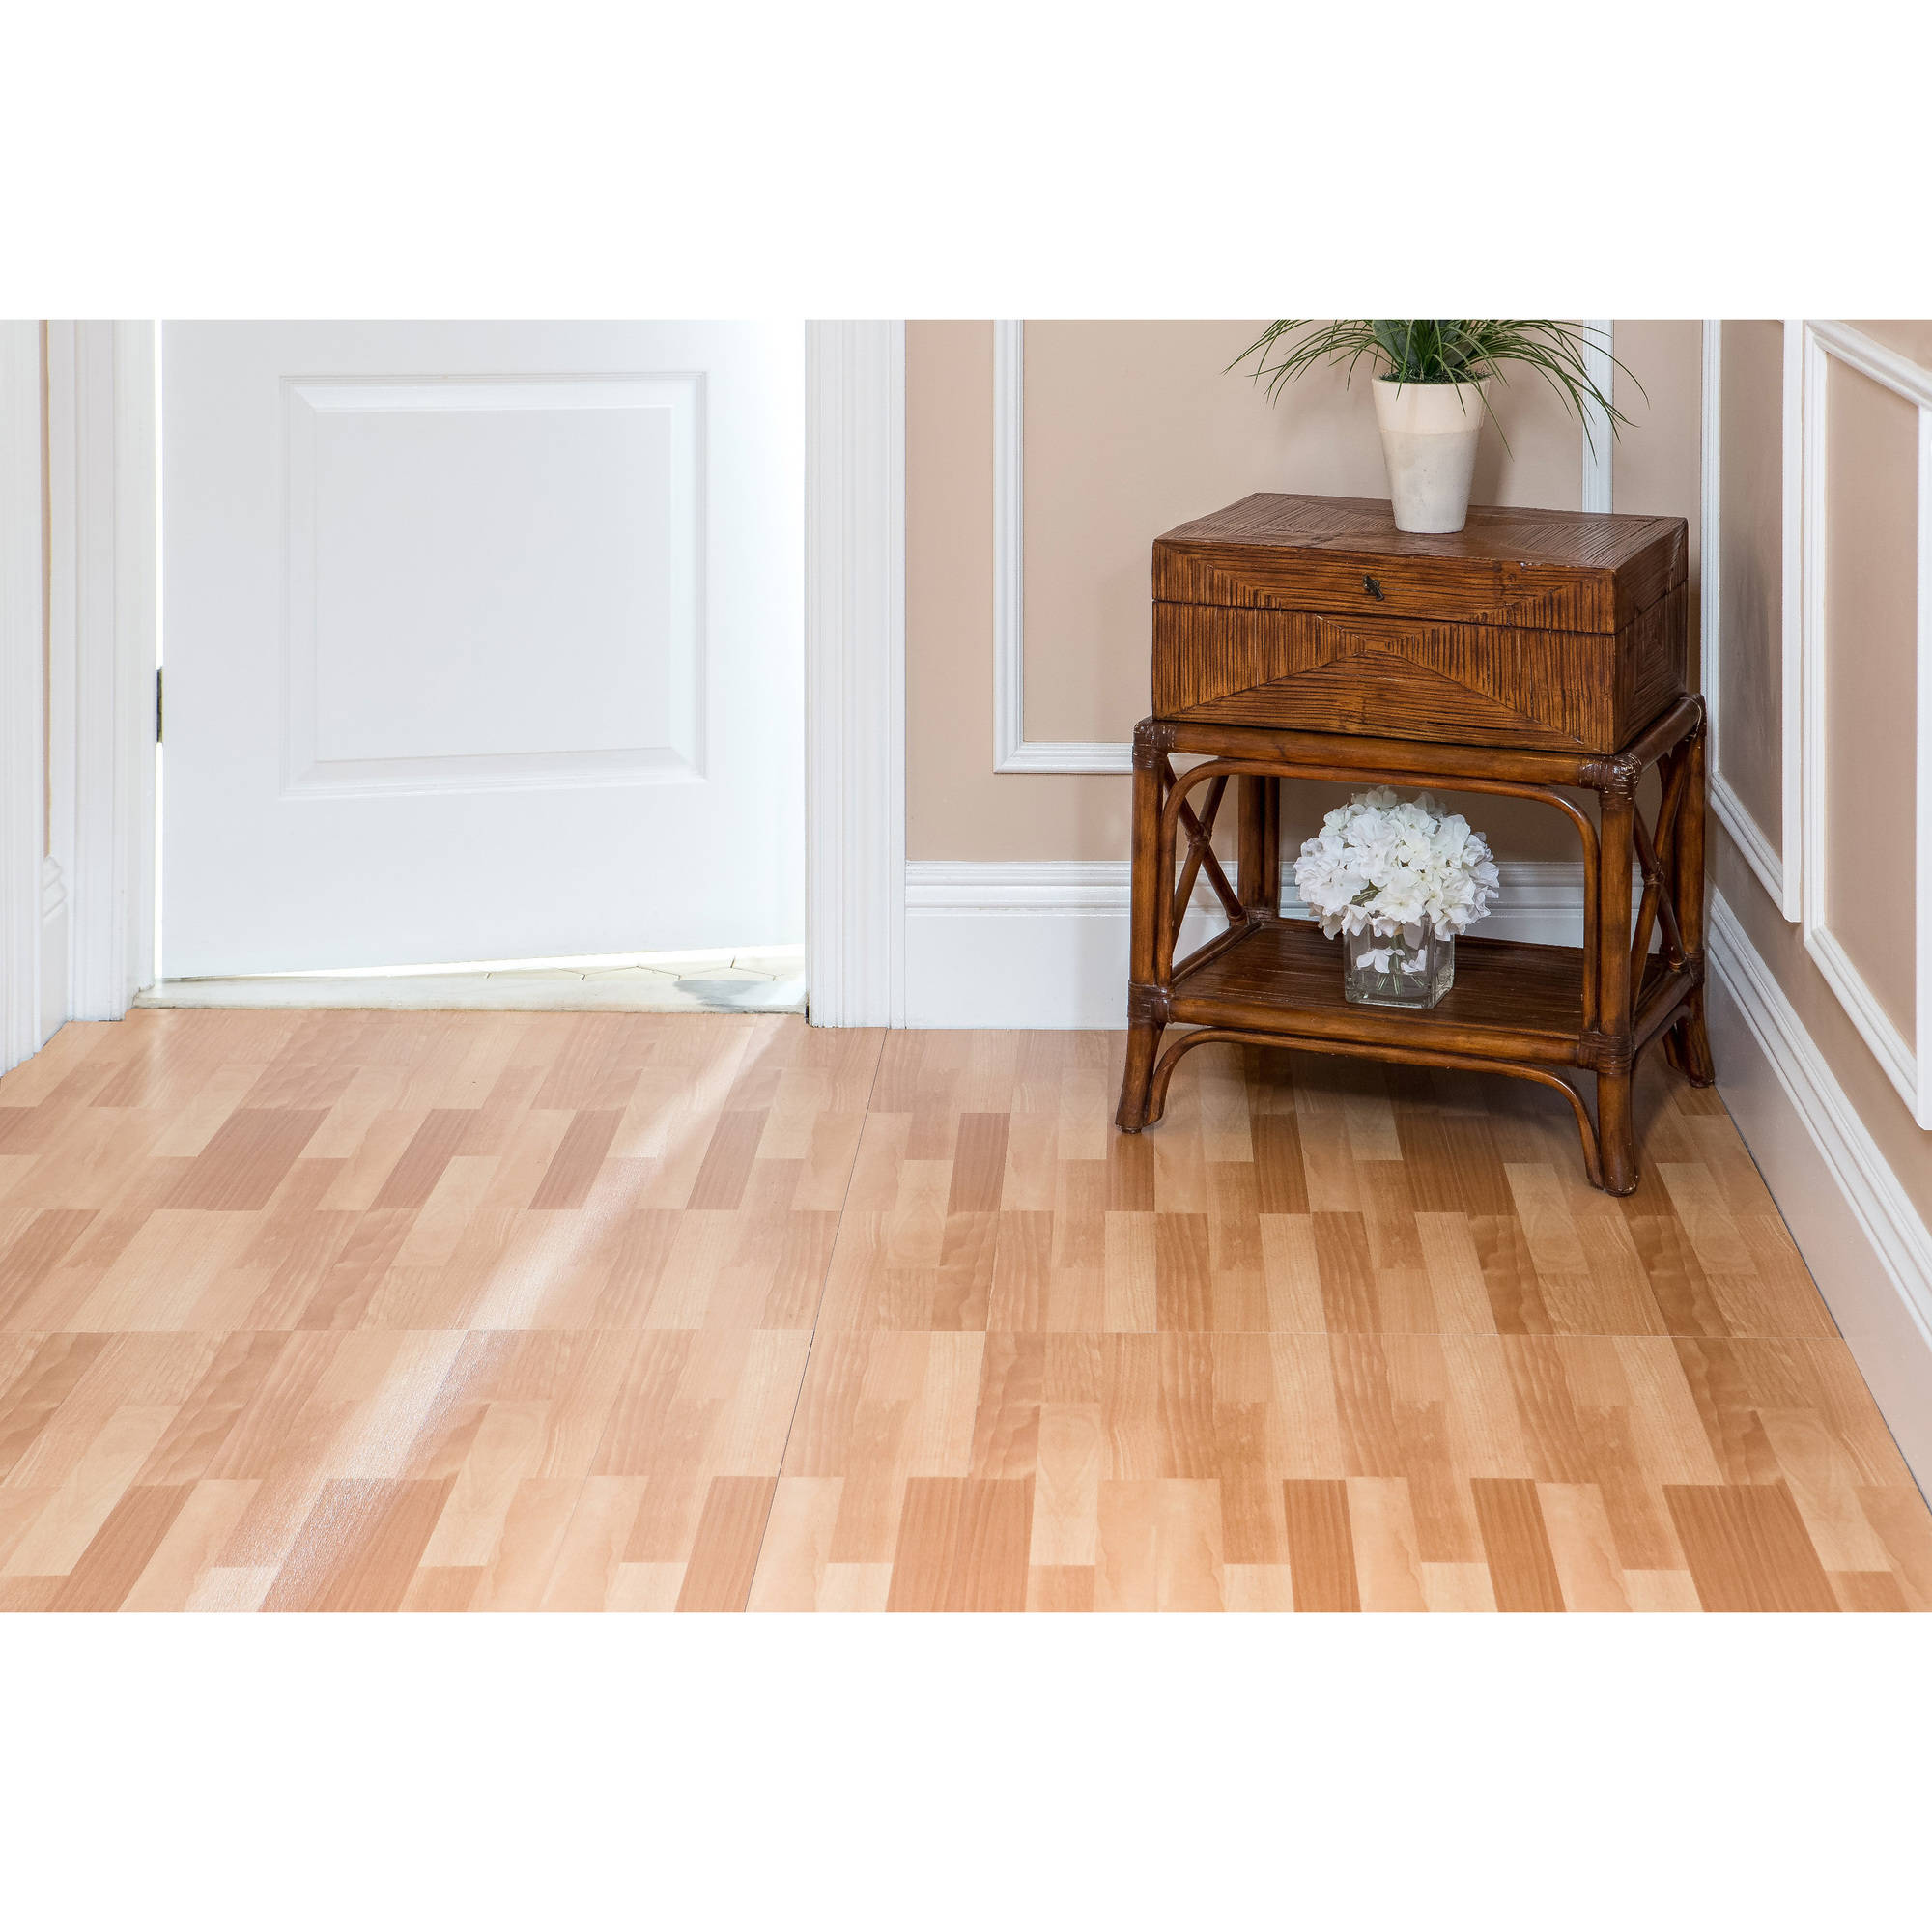 tivoli ii 6x36 peel 'n' stick vinyl planks - 10 planks/15 sq.ft